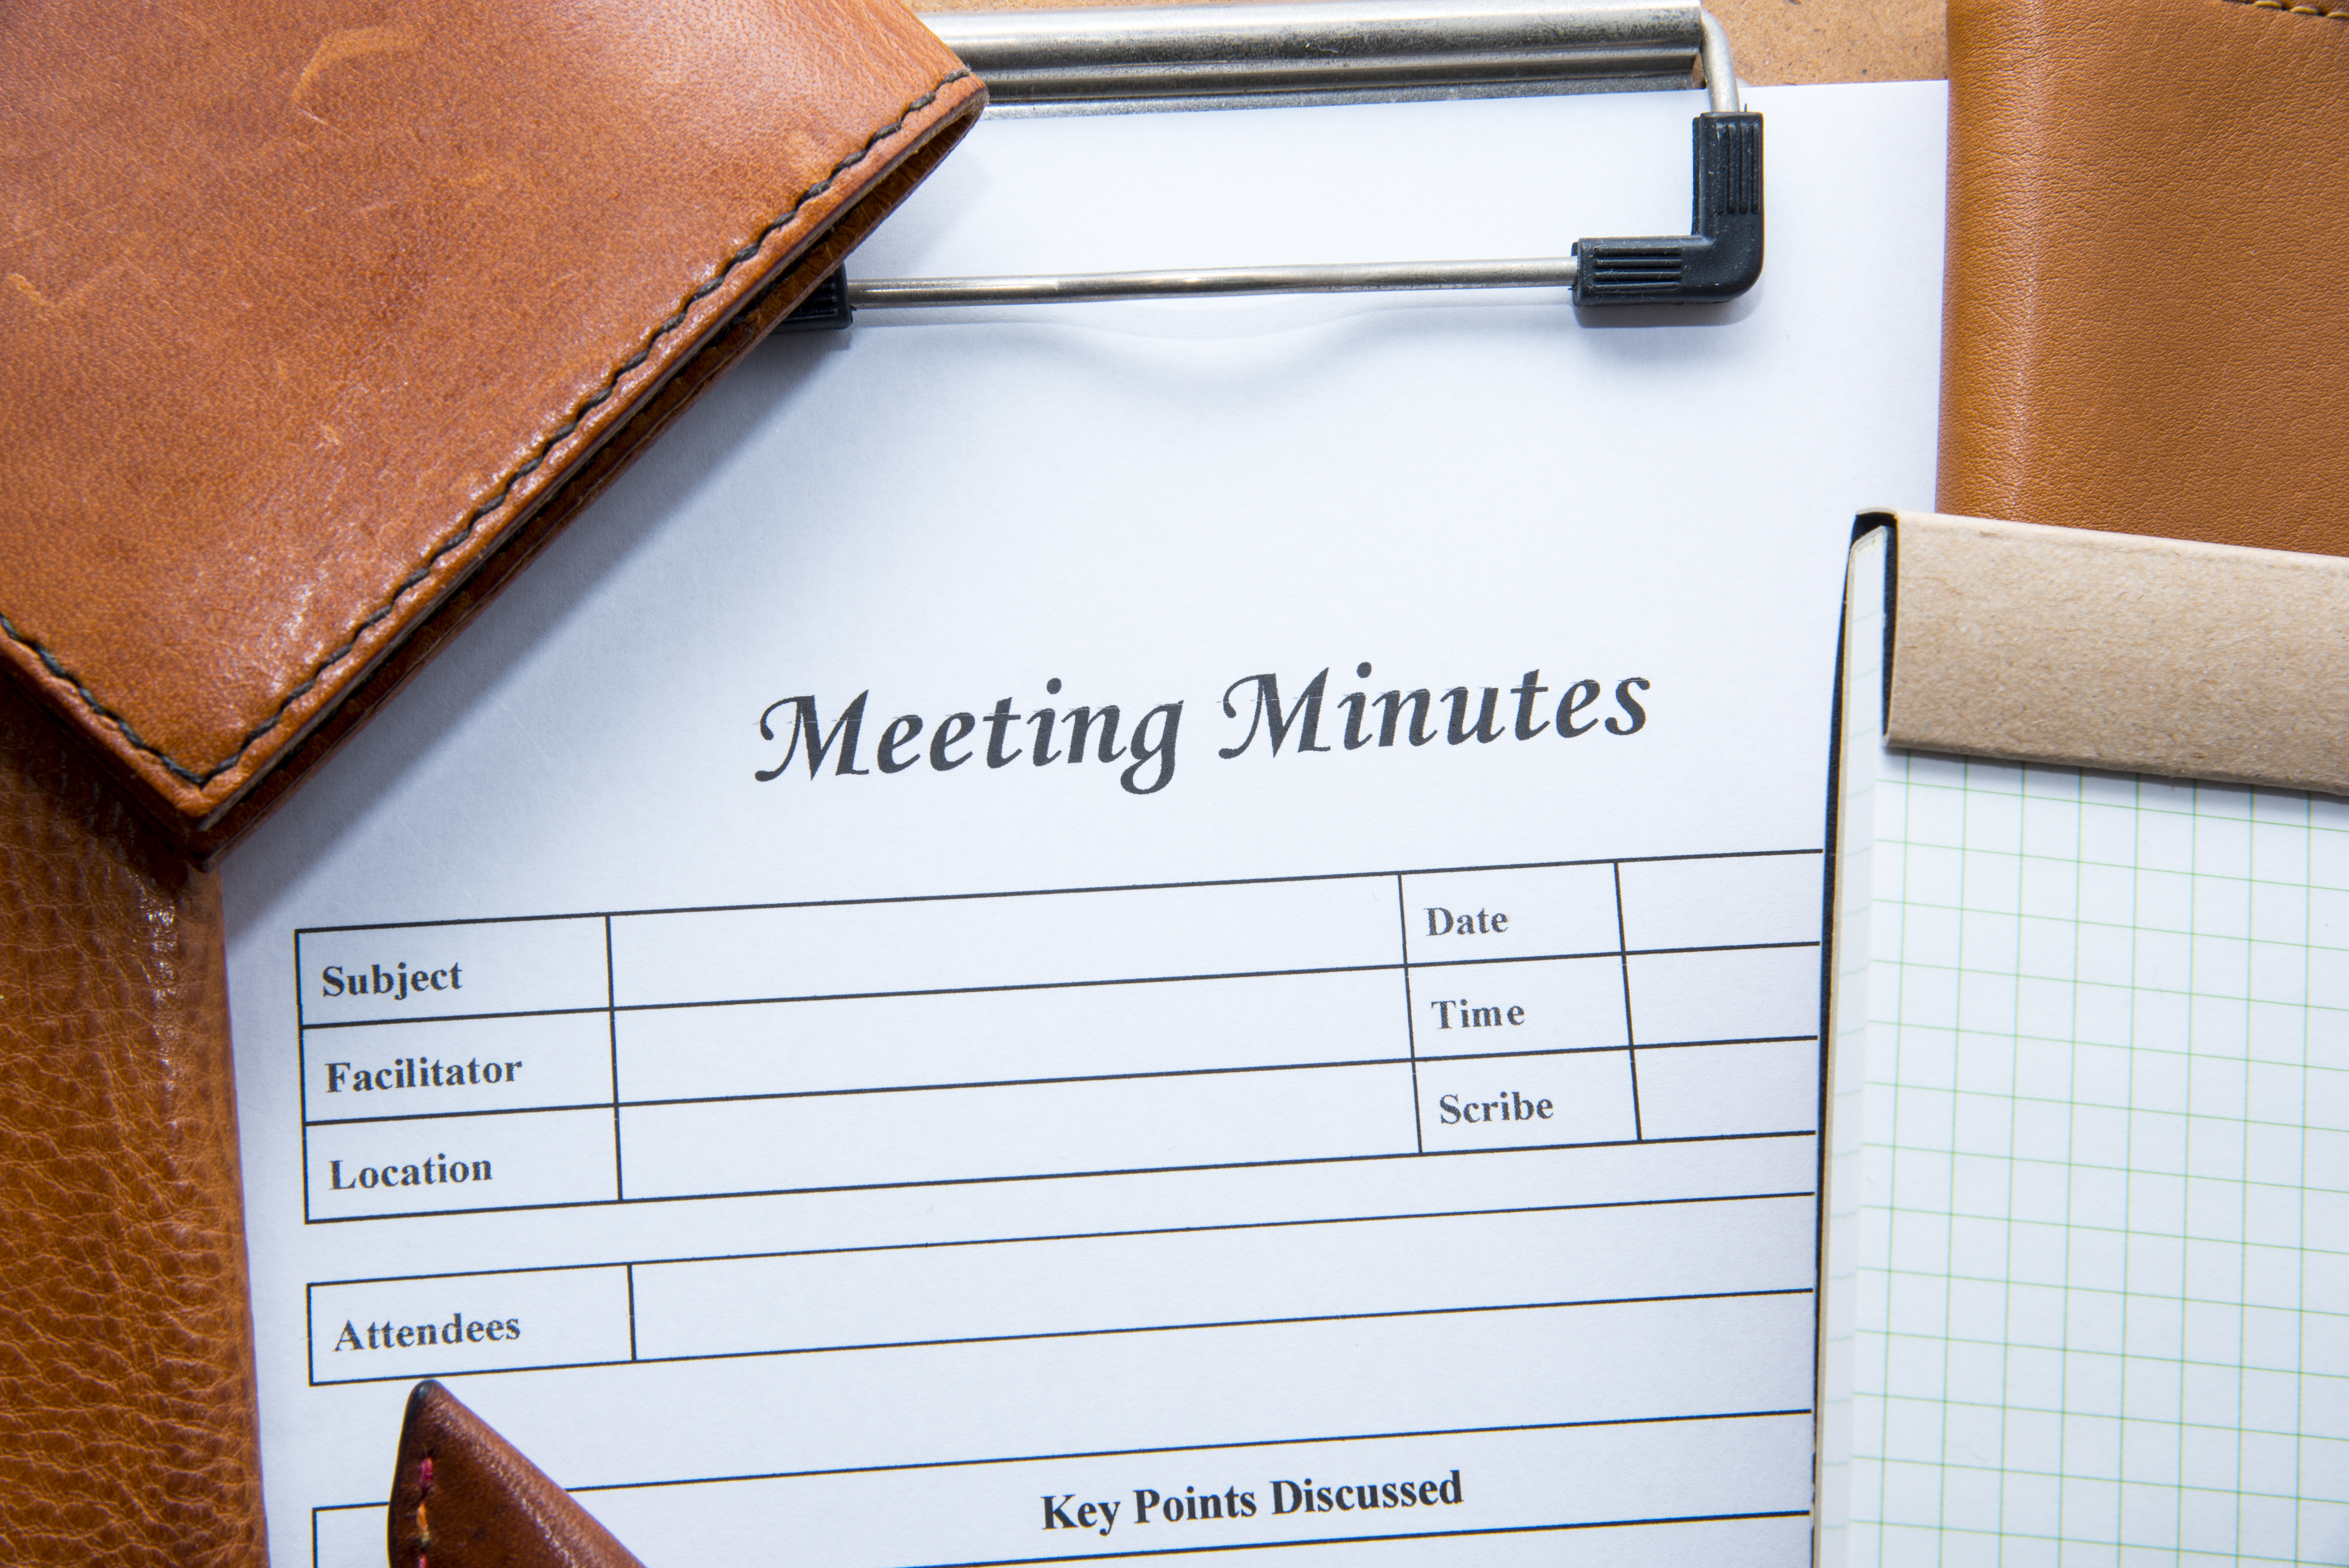 HOA Meeting Minutes: The Dos and Don'ts that Every Board Secretary Needs to Know